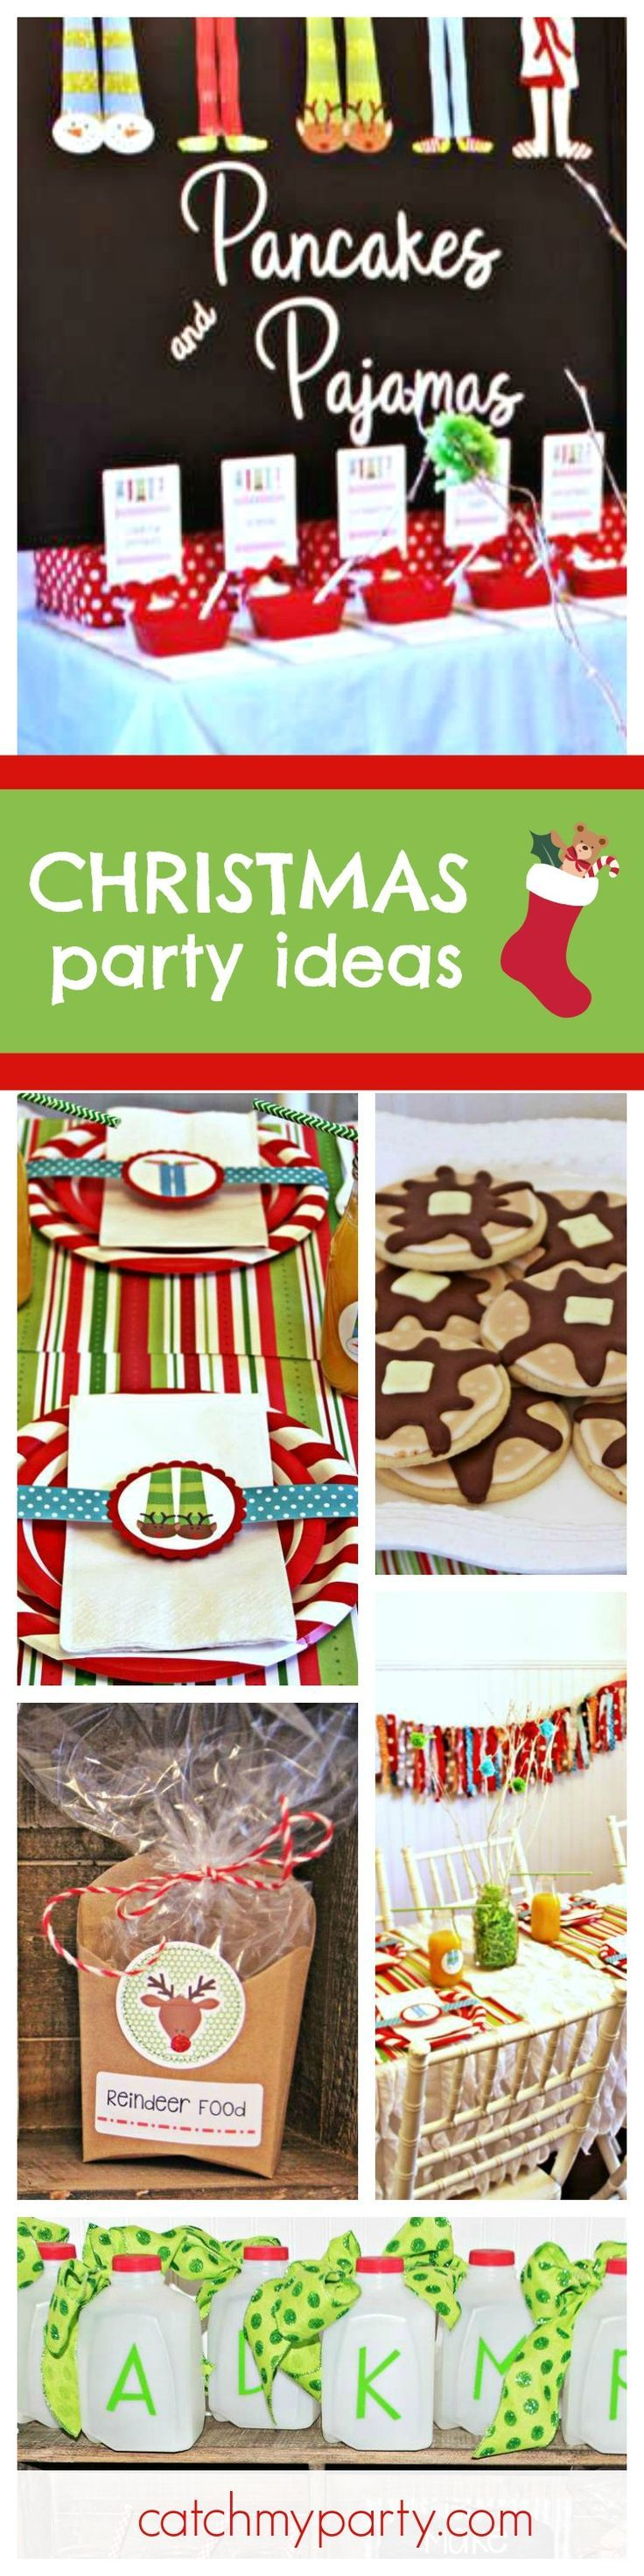 Pajama Christmas Party Ideas Part - 47: Check Out This Fantastic Pancakes U0026 Pajamas Christmas Party. The Holiday  Table Settings Are So